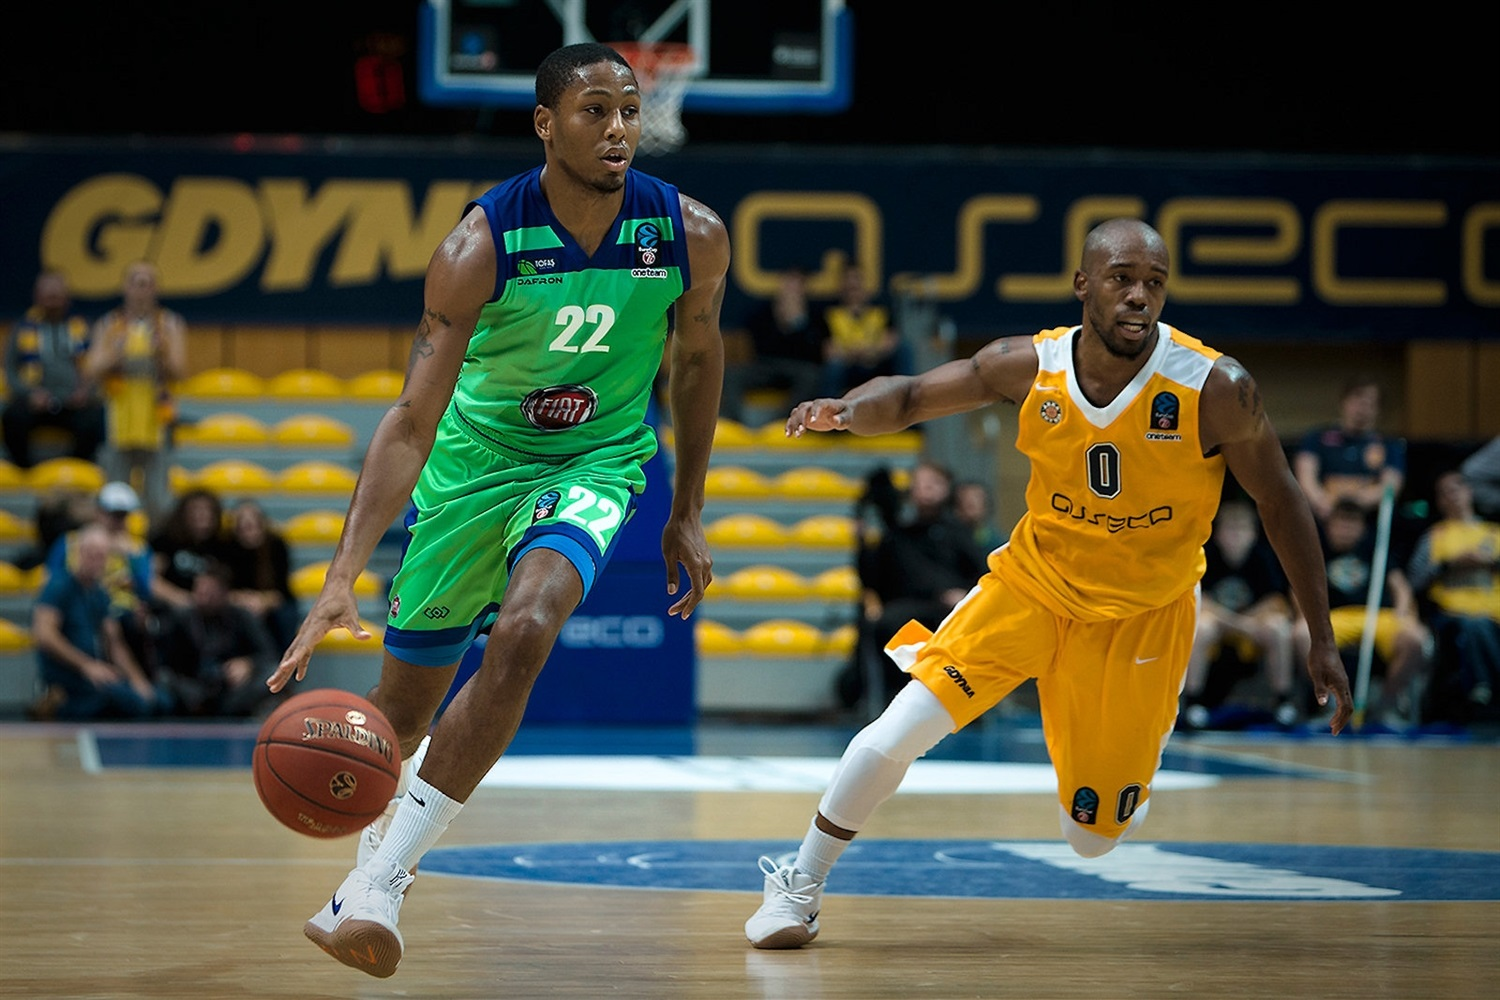 Demonte Harper - Tofas Bursa (photo Arka Gdynia) - EC18